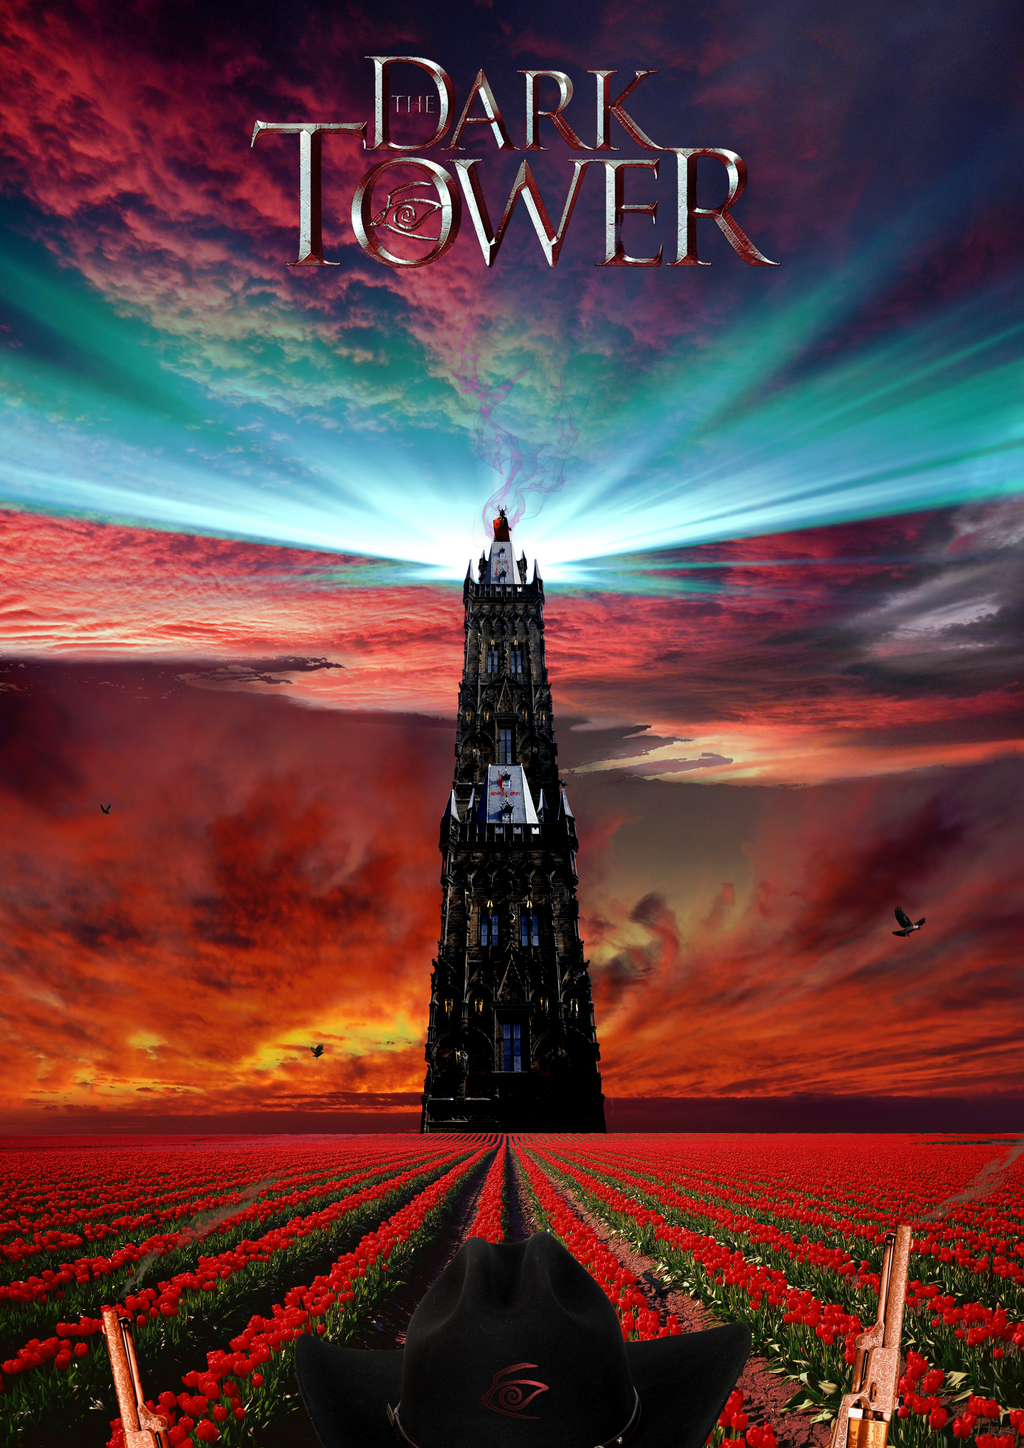 the dark tower 8 pdf